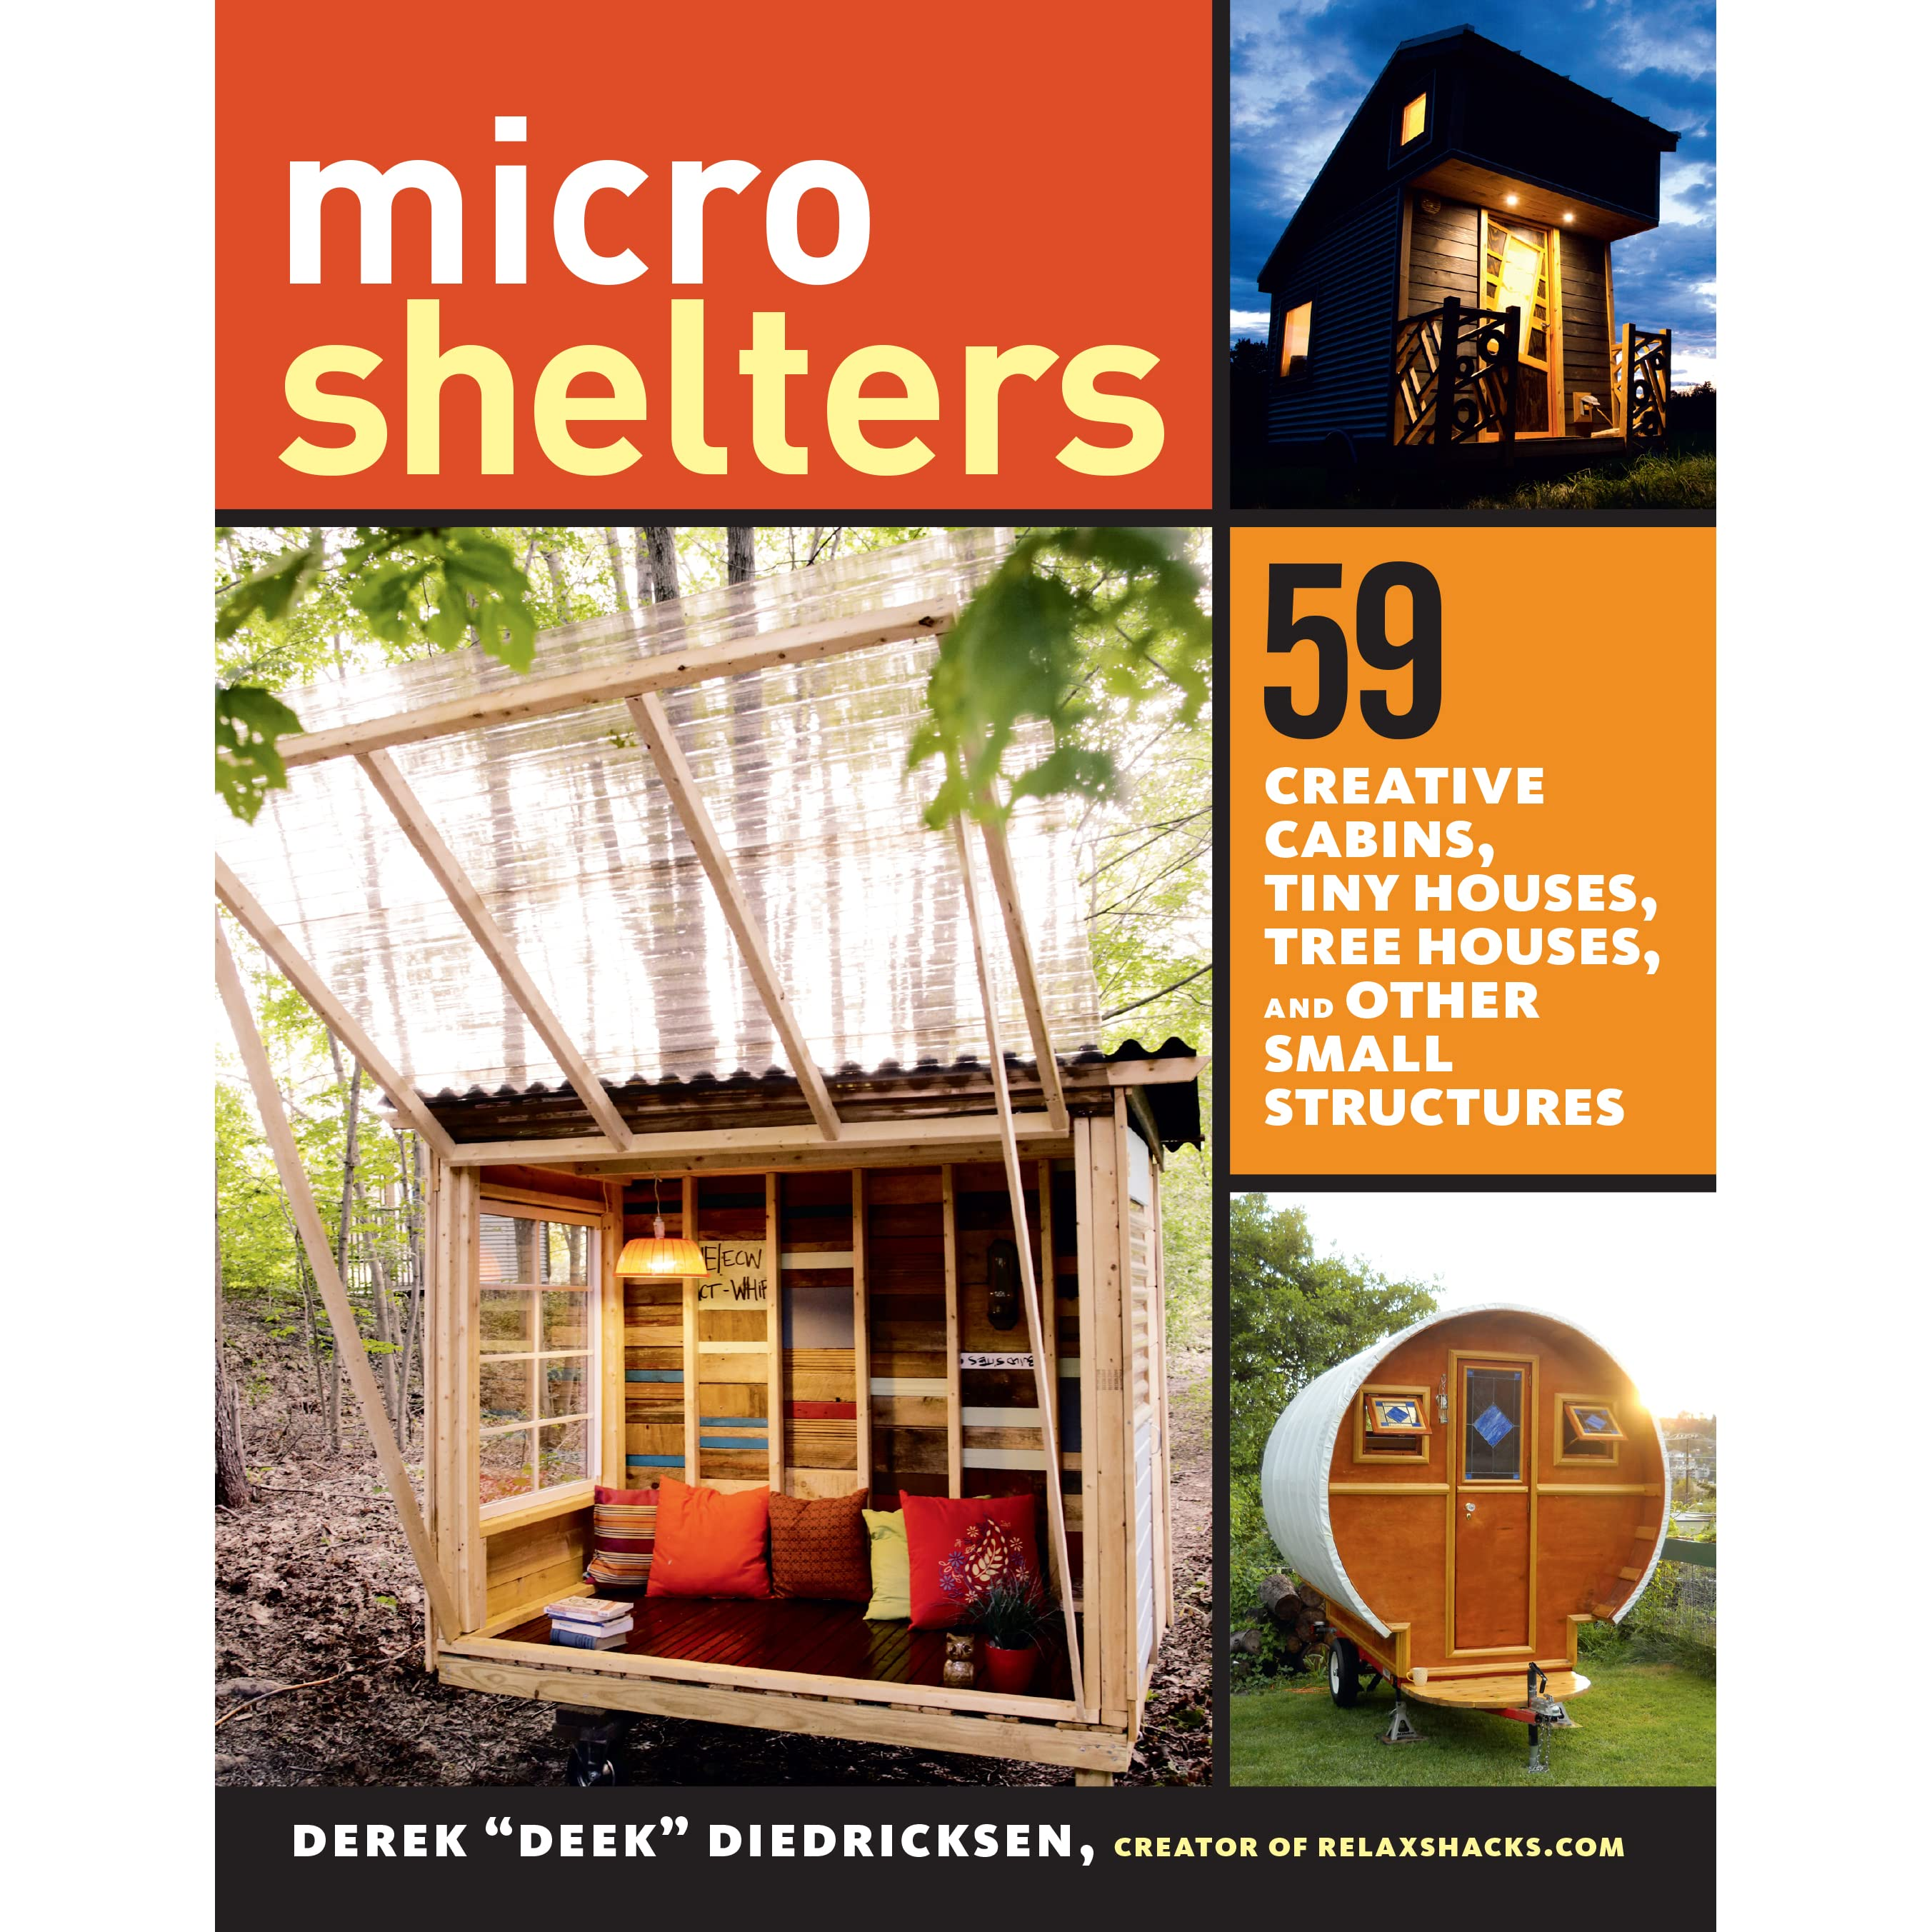 Microshelters 59 creative cabins tiny houses tree for Small house design books